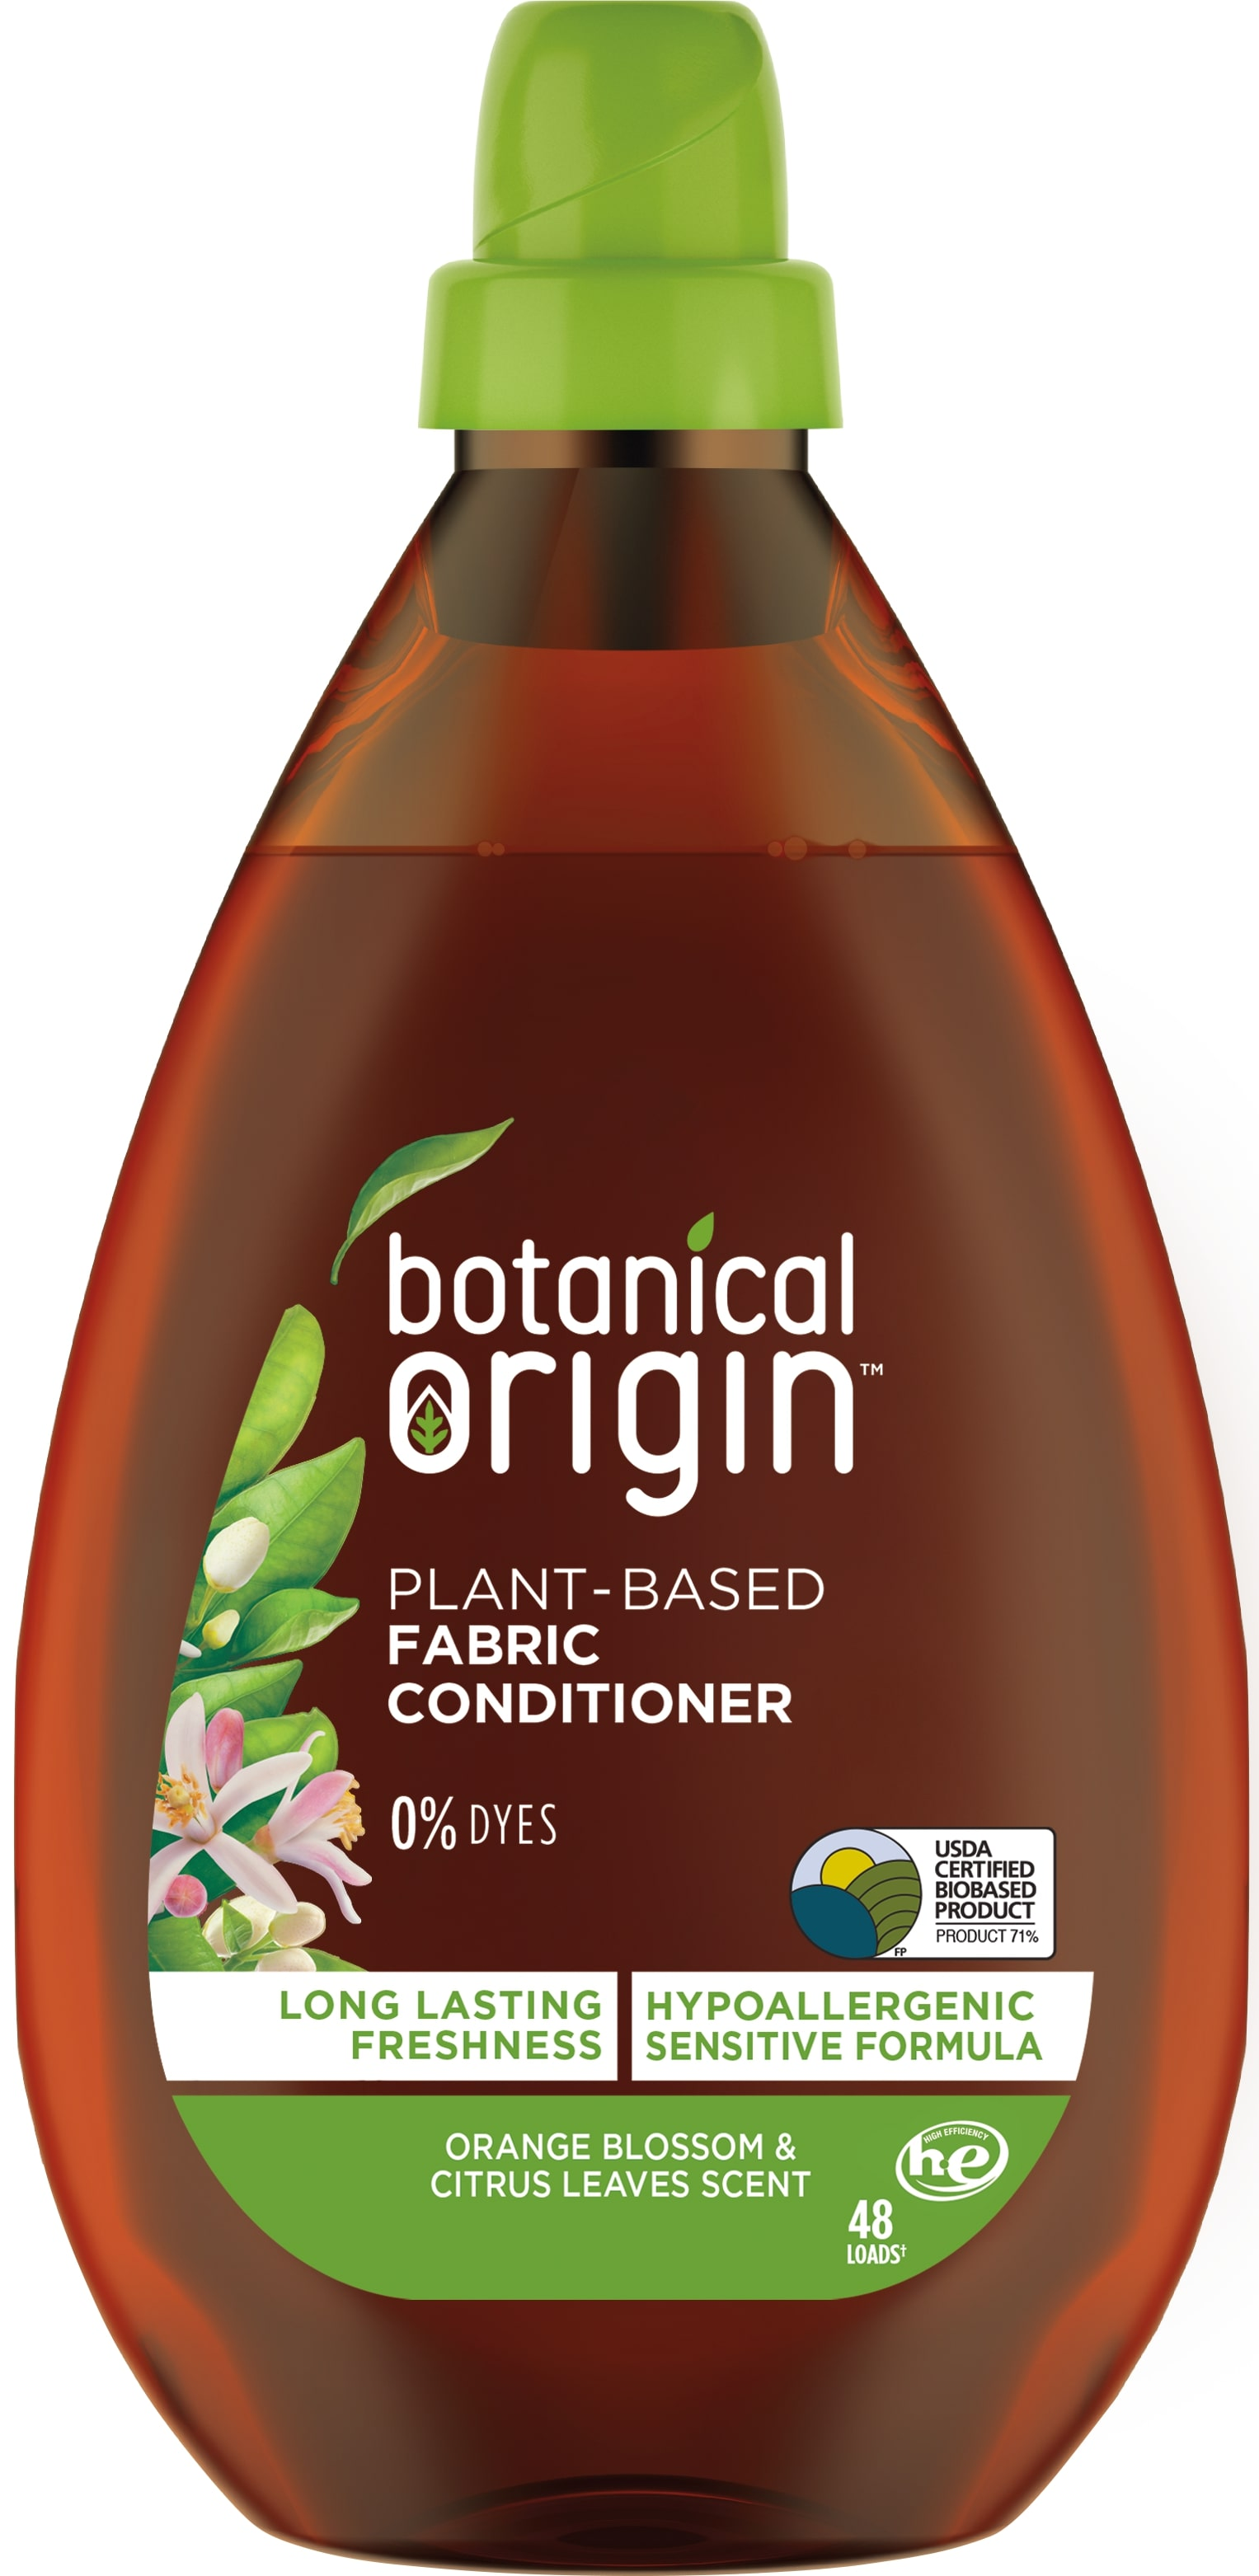 Botanical Origin PlantBased Fabric Conditioner  Orange Blossom  Citrus Leaves Photo